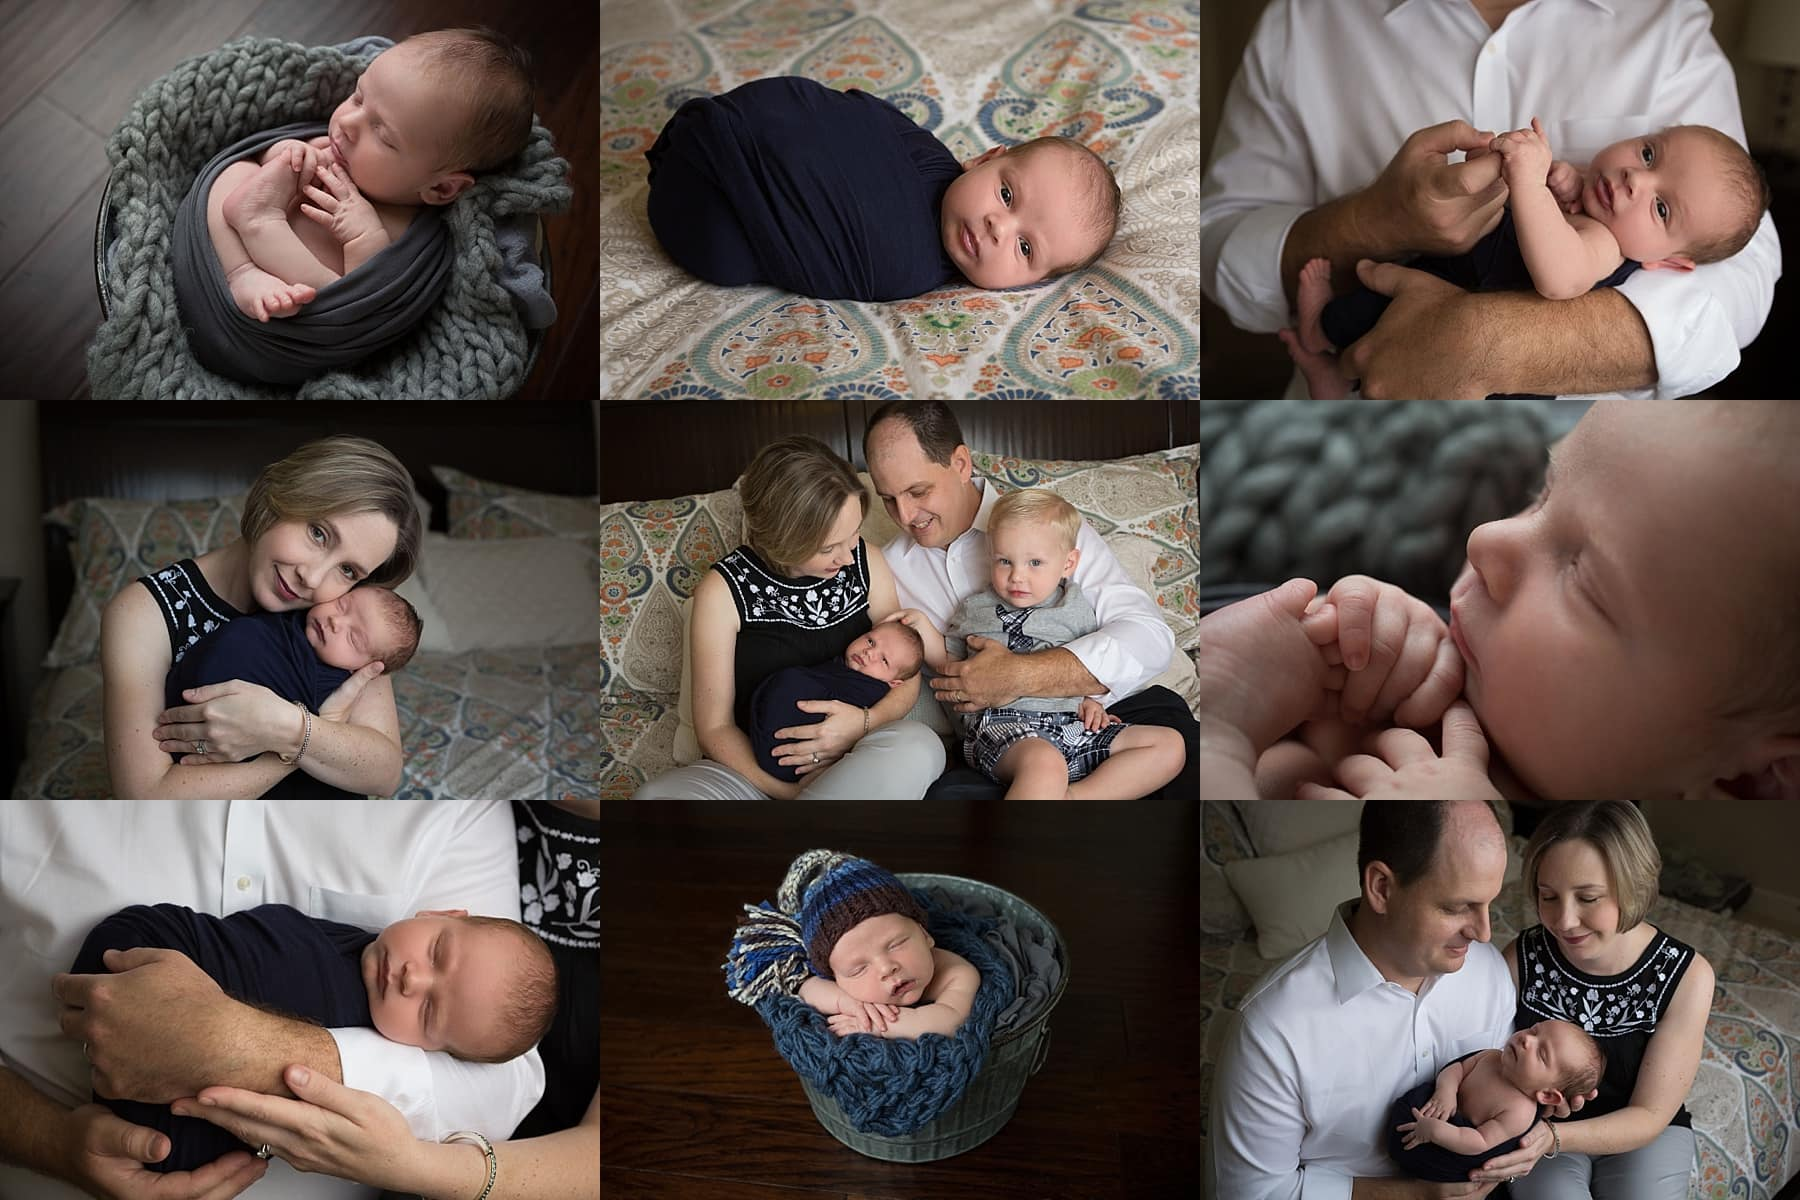 newborn boy photo session at home in San Antonio, Texas